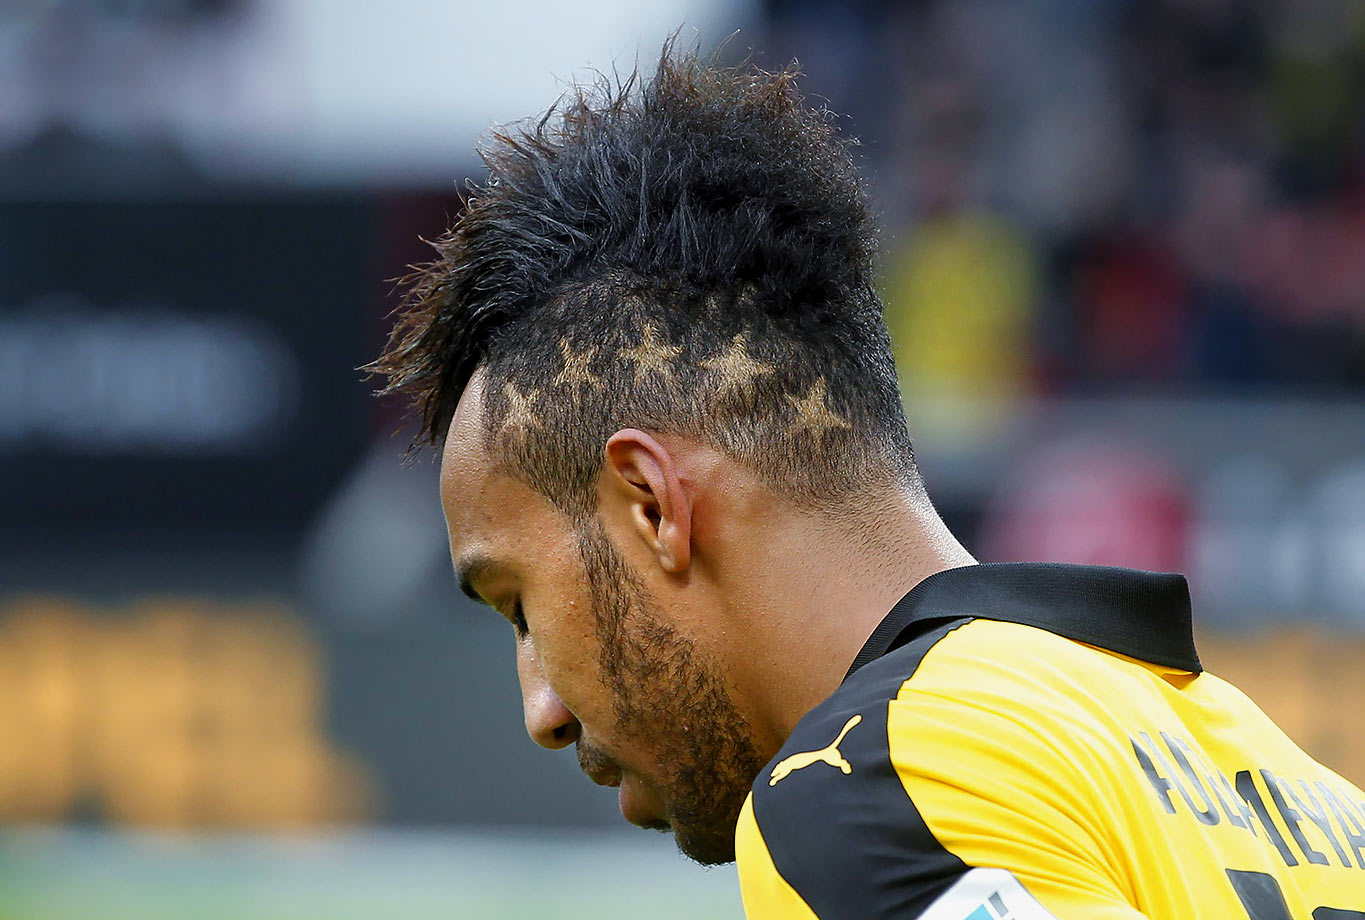 Borussia Dortmund's Pierre-Emerick Aubameyang sports an interesting hairdo during the Bundesliga match against Bayer Leverkusen in Leverkusen, Germany.